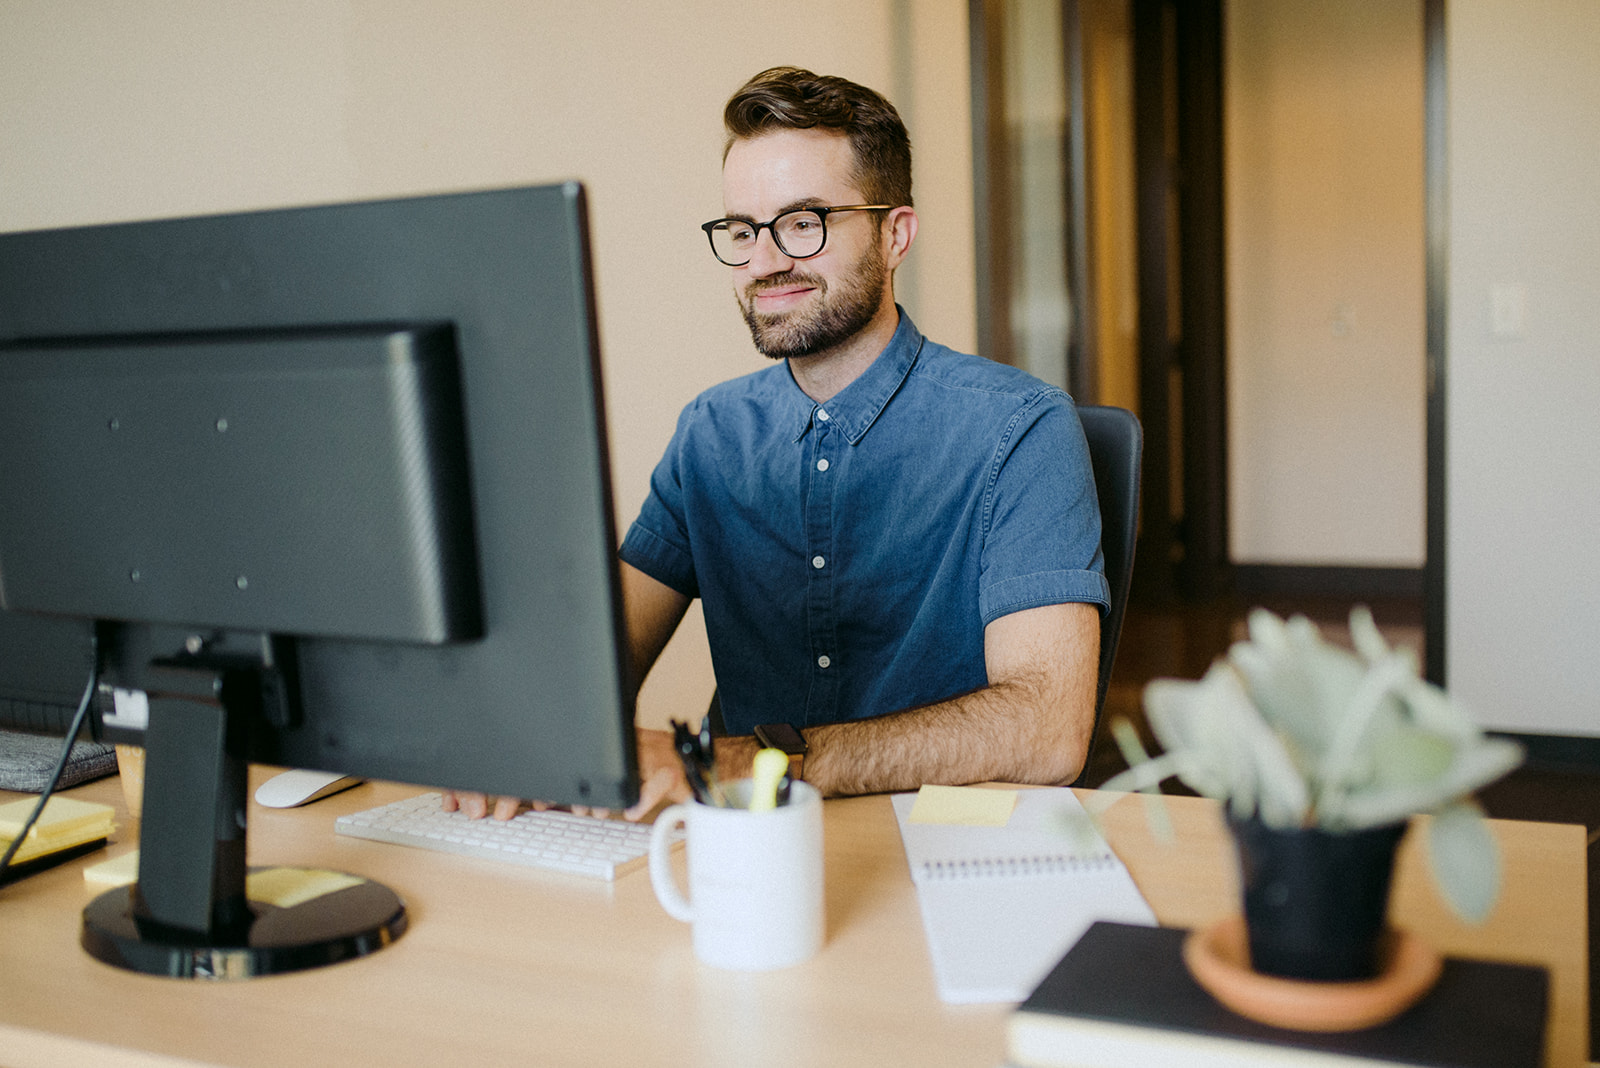 man sitting at office desk looking at desktop computer